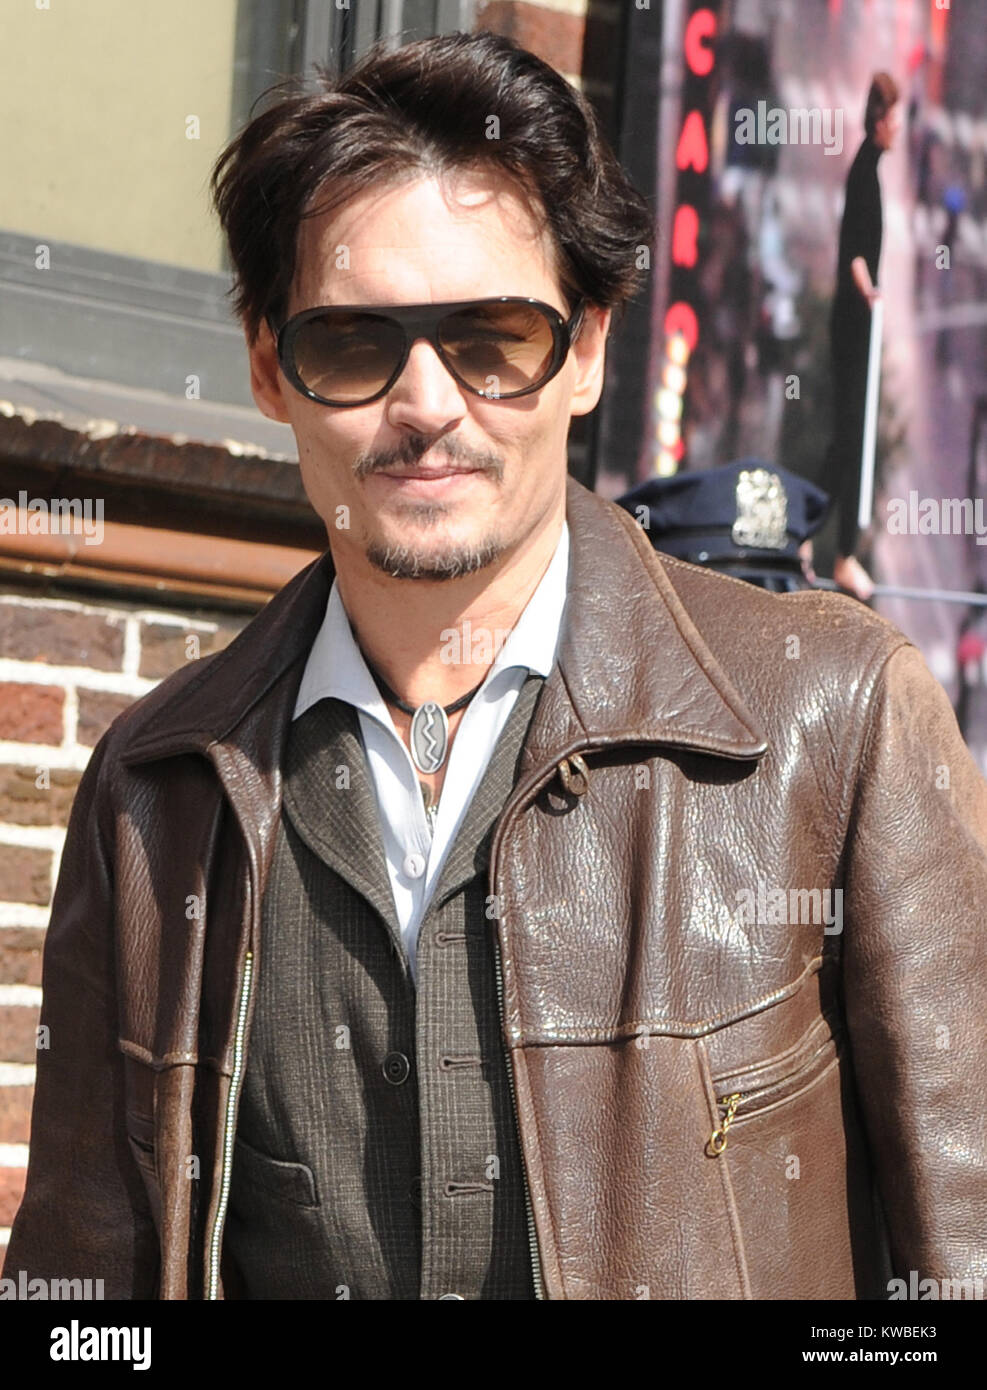 NEW YORK, NY - APRIL 03: Johnny Depp enters the 'Late Show With David Letterman' taping at the Ed Sullivan - Stock Image